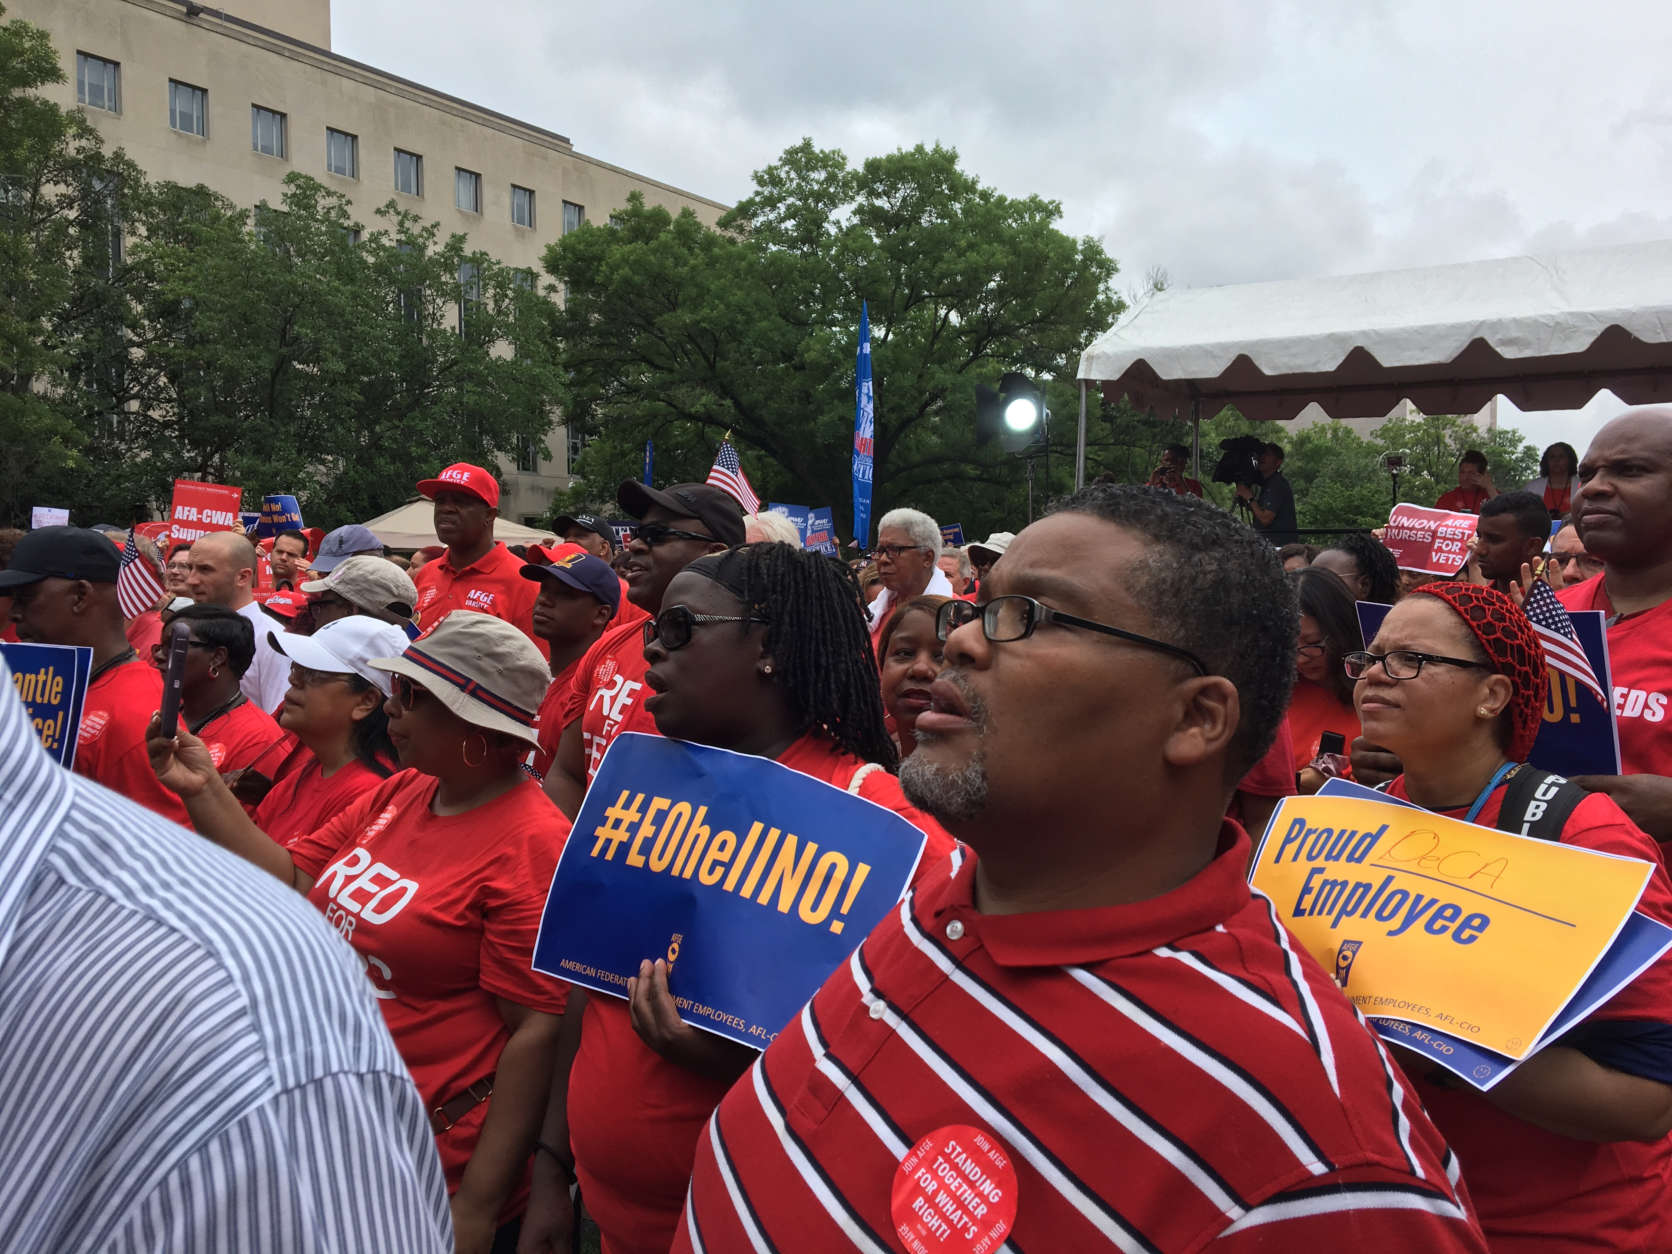 Fed unions protest on day of federal court challenge to